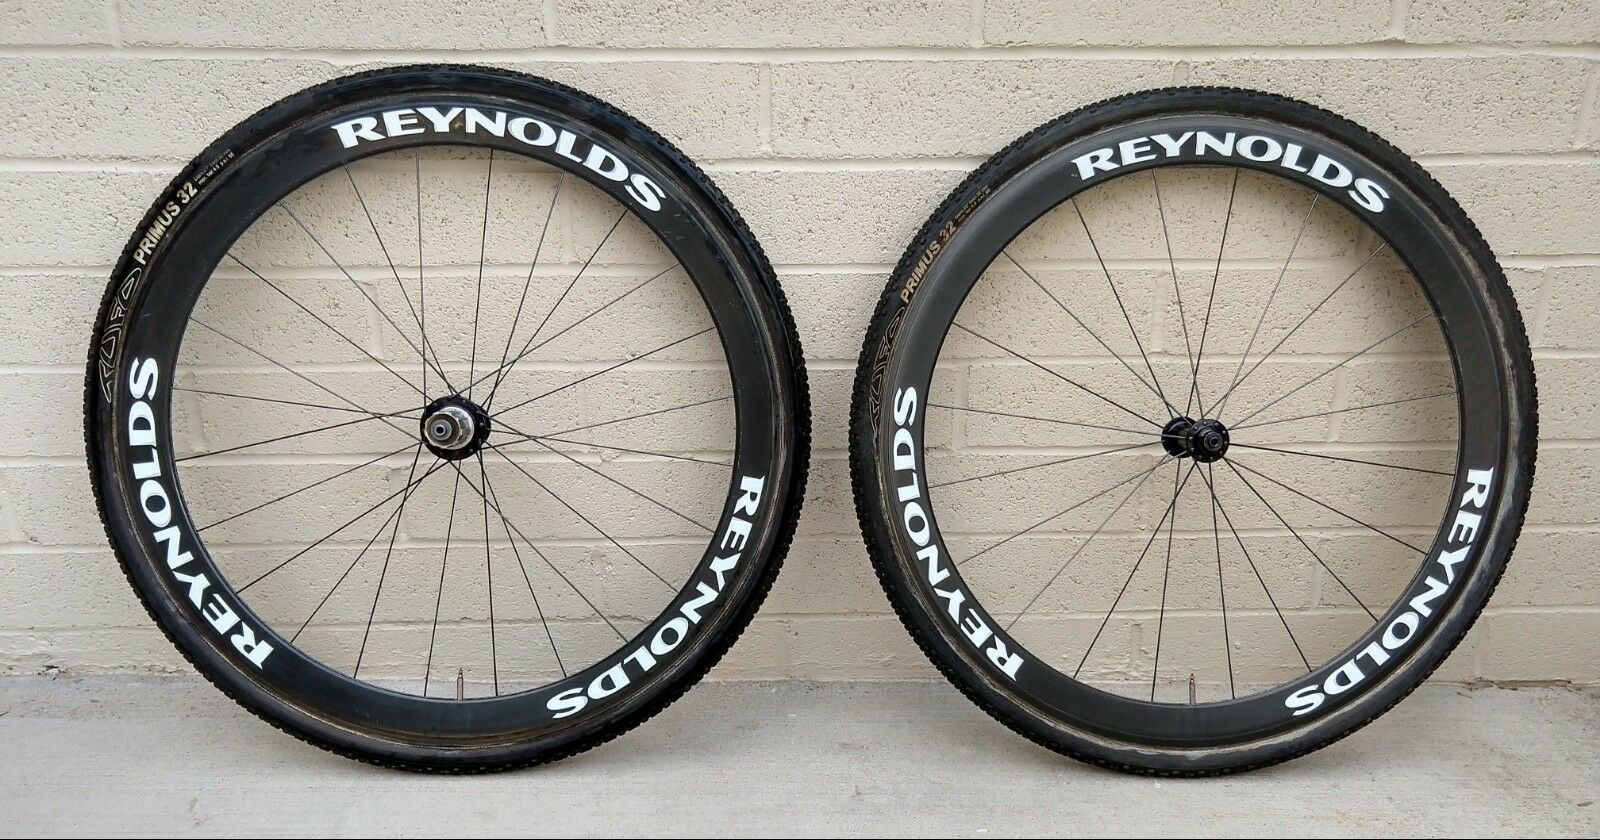 Reynolds Assault Carbon Tubular Wheelset & TUFO Primus 32mm Cyclocross Tires